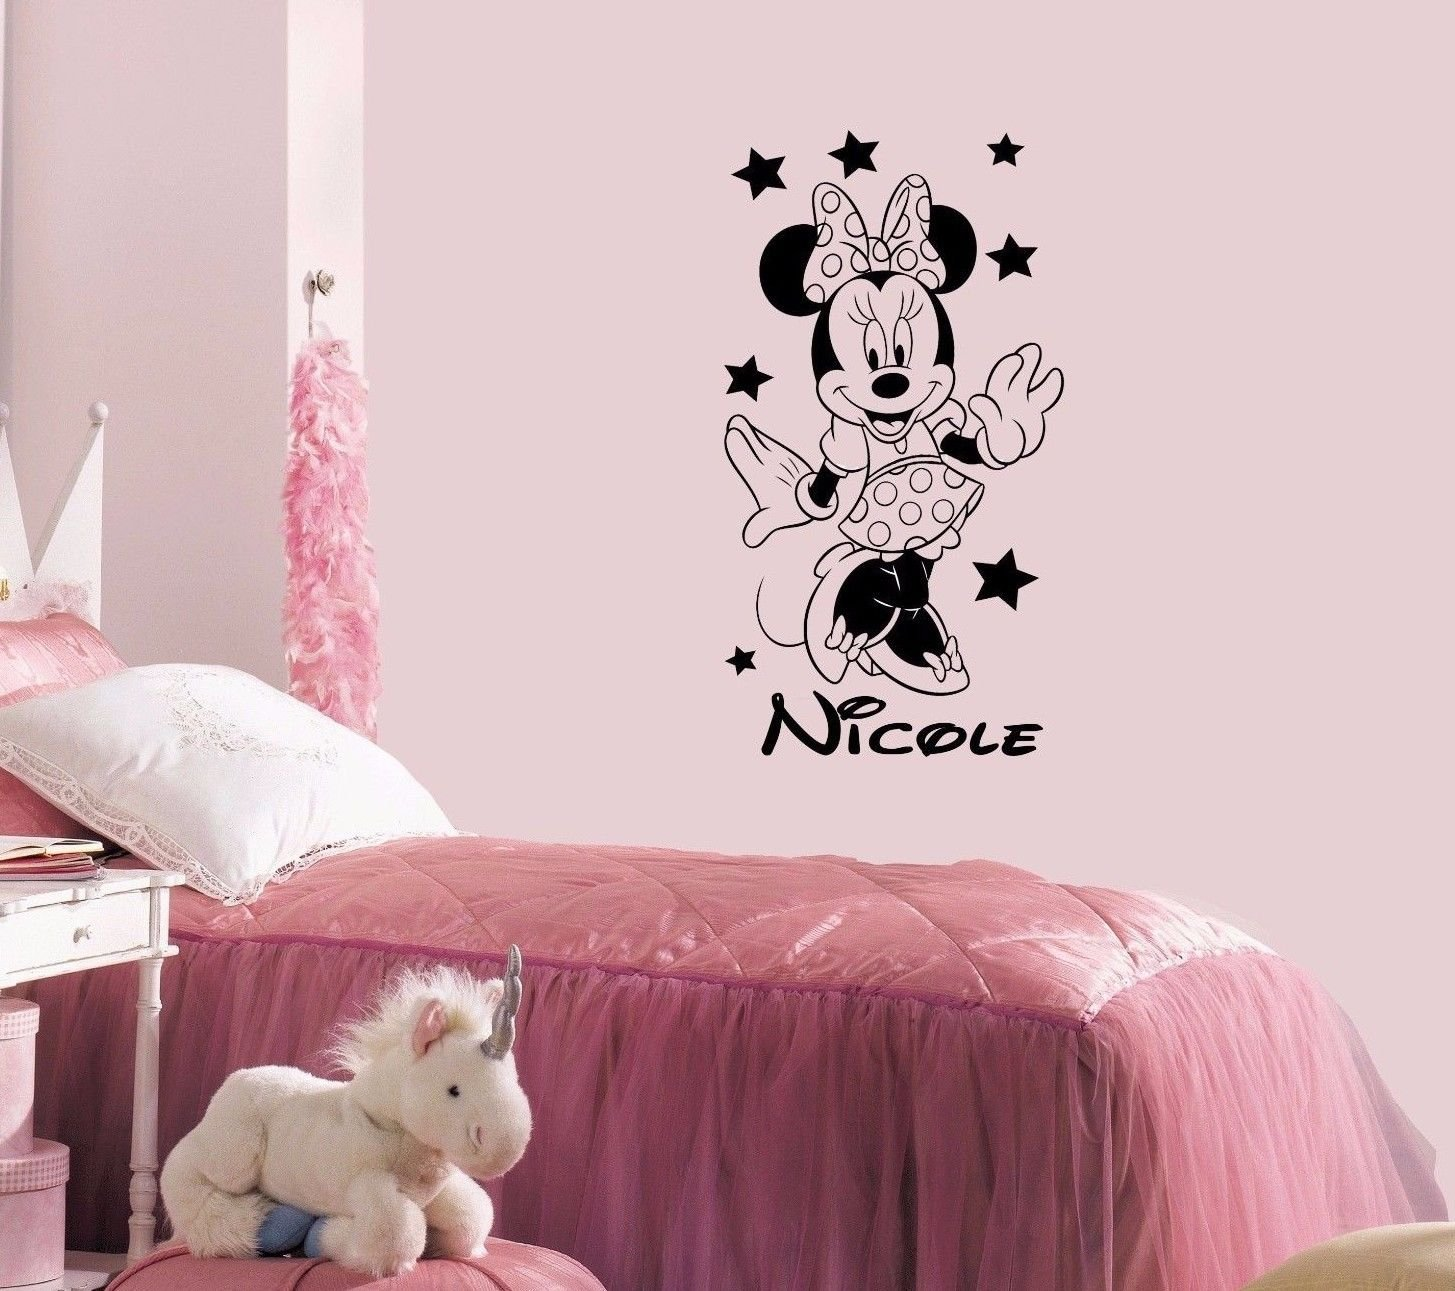 Amazoncom Name Wall Decal Minnie Mouse Disney Vinyl Decals - Custom vinyl wall decals disney